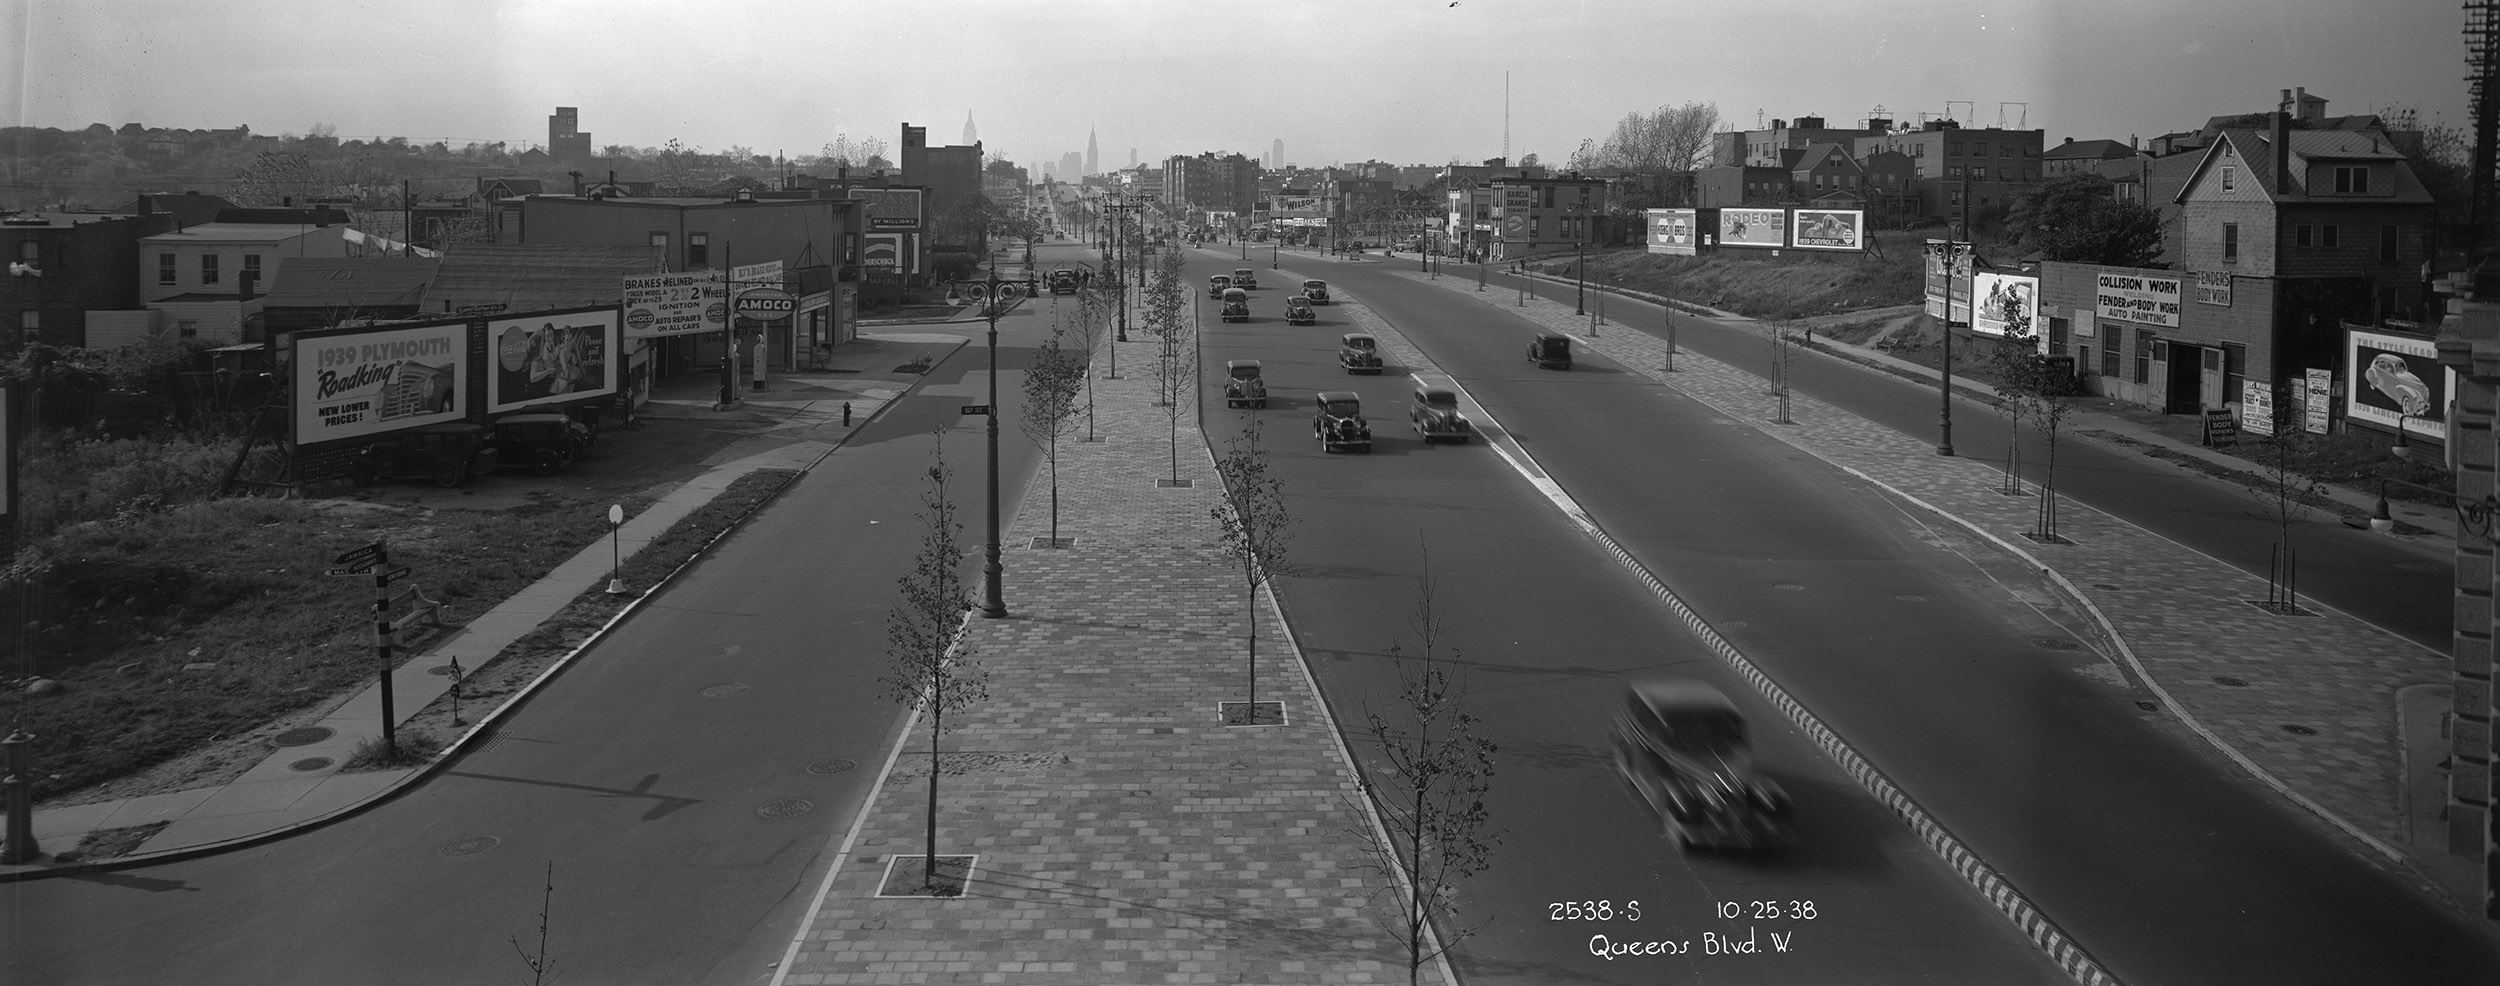 Queens Boulevard, looking west, October 25, 1938. Borough President Queens Collection, NYC Municipal Archives.